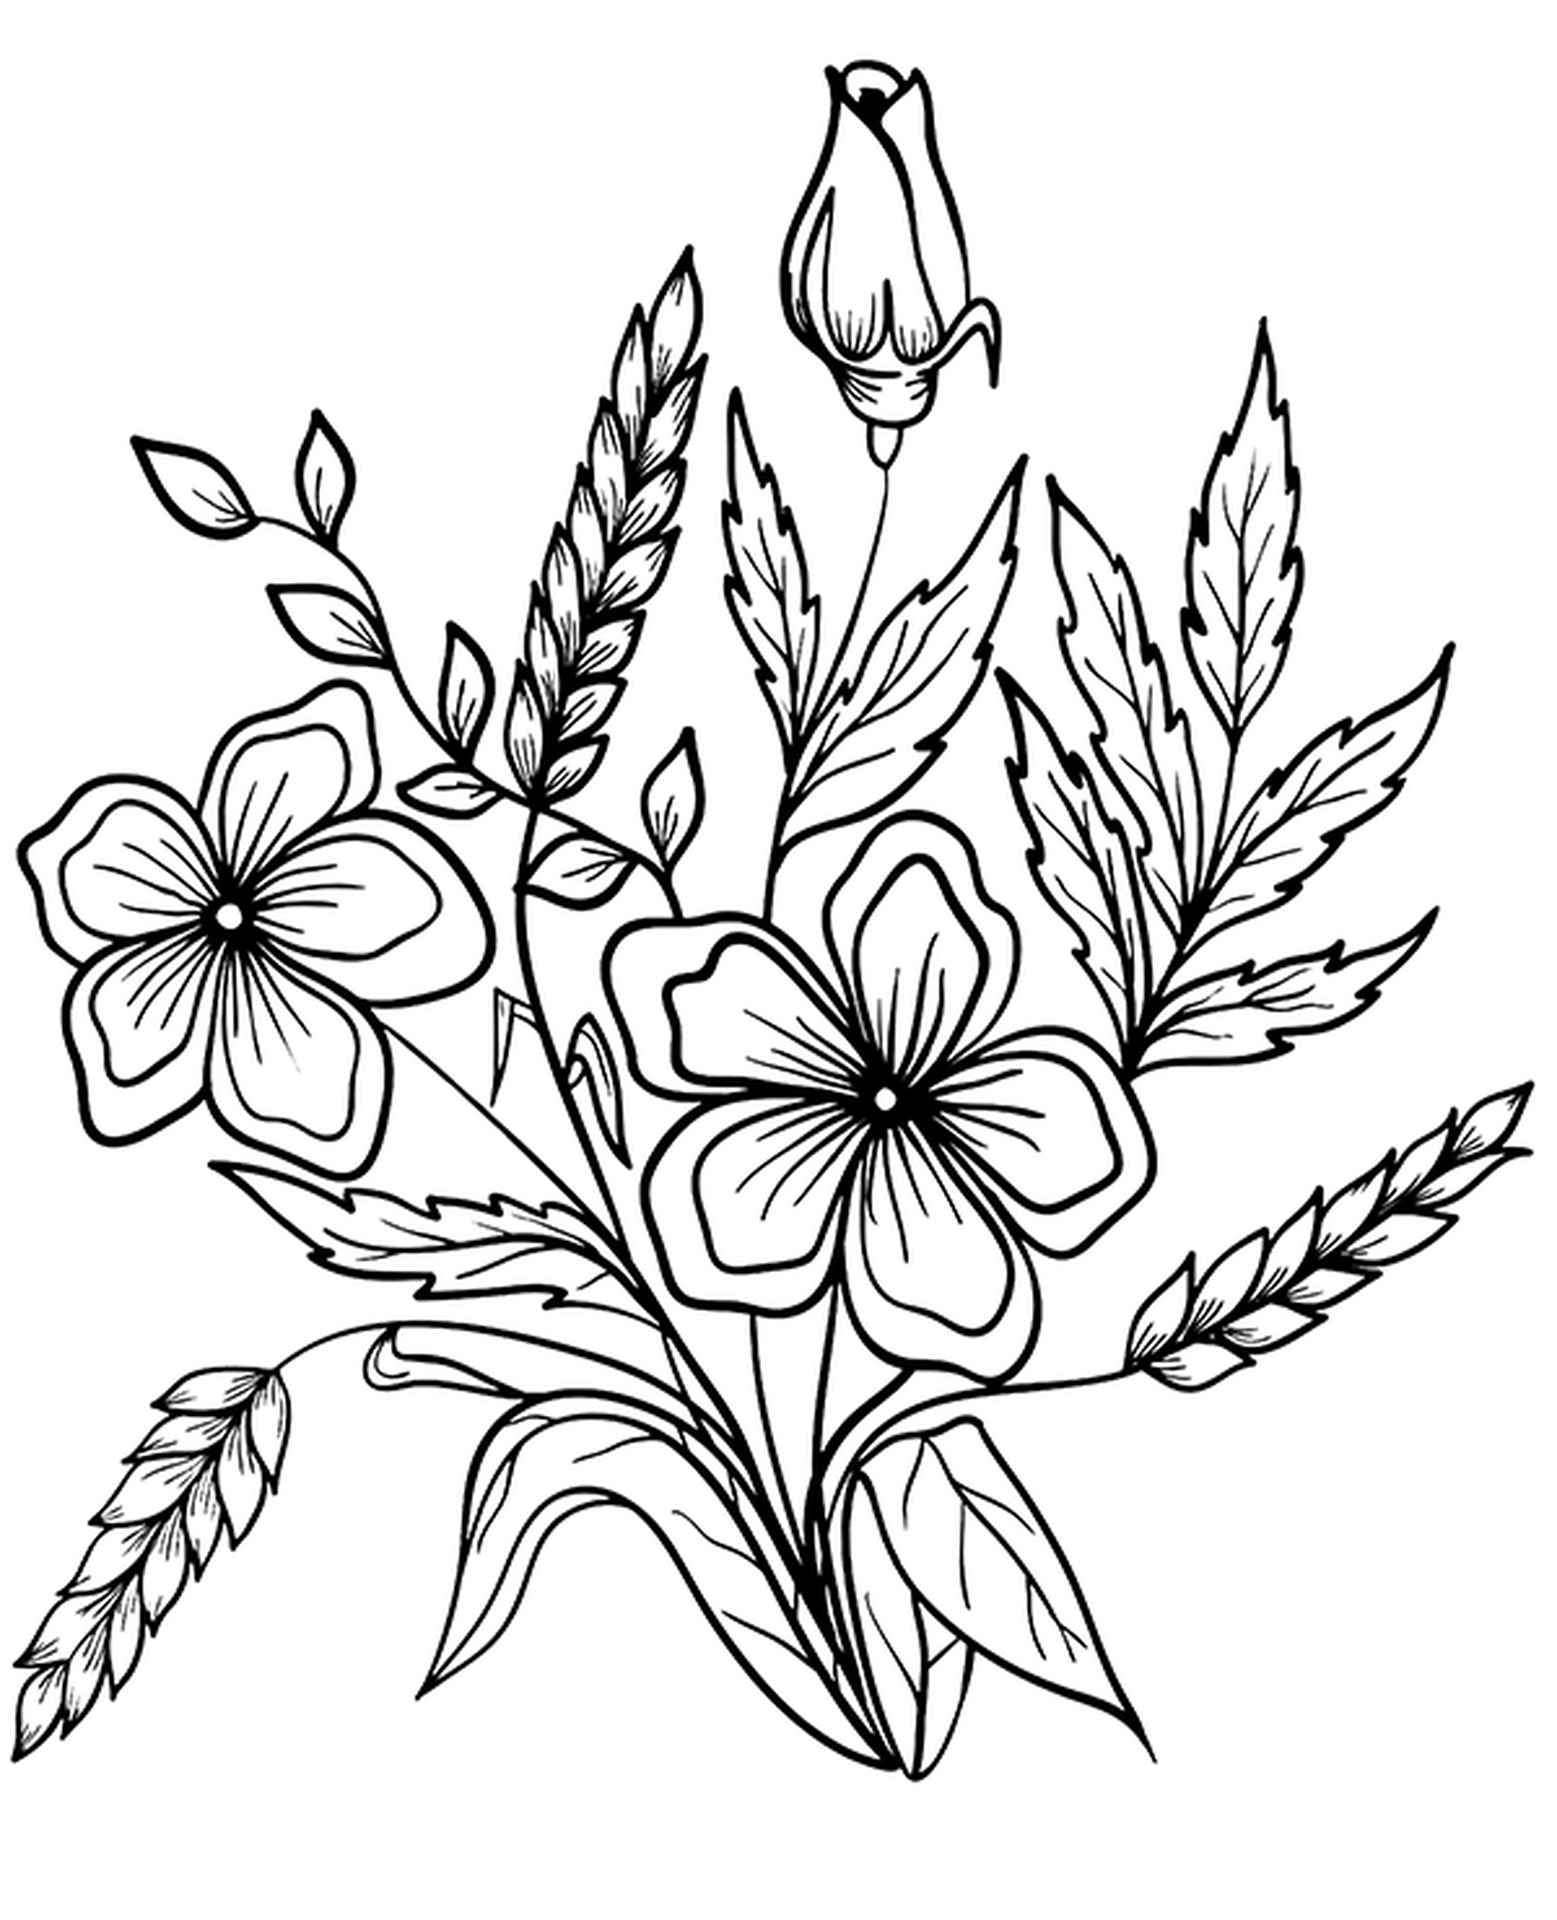 Autumn Flowers With Ears Of Hay Coloring Sheet